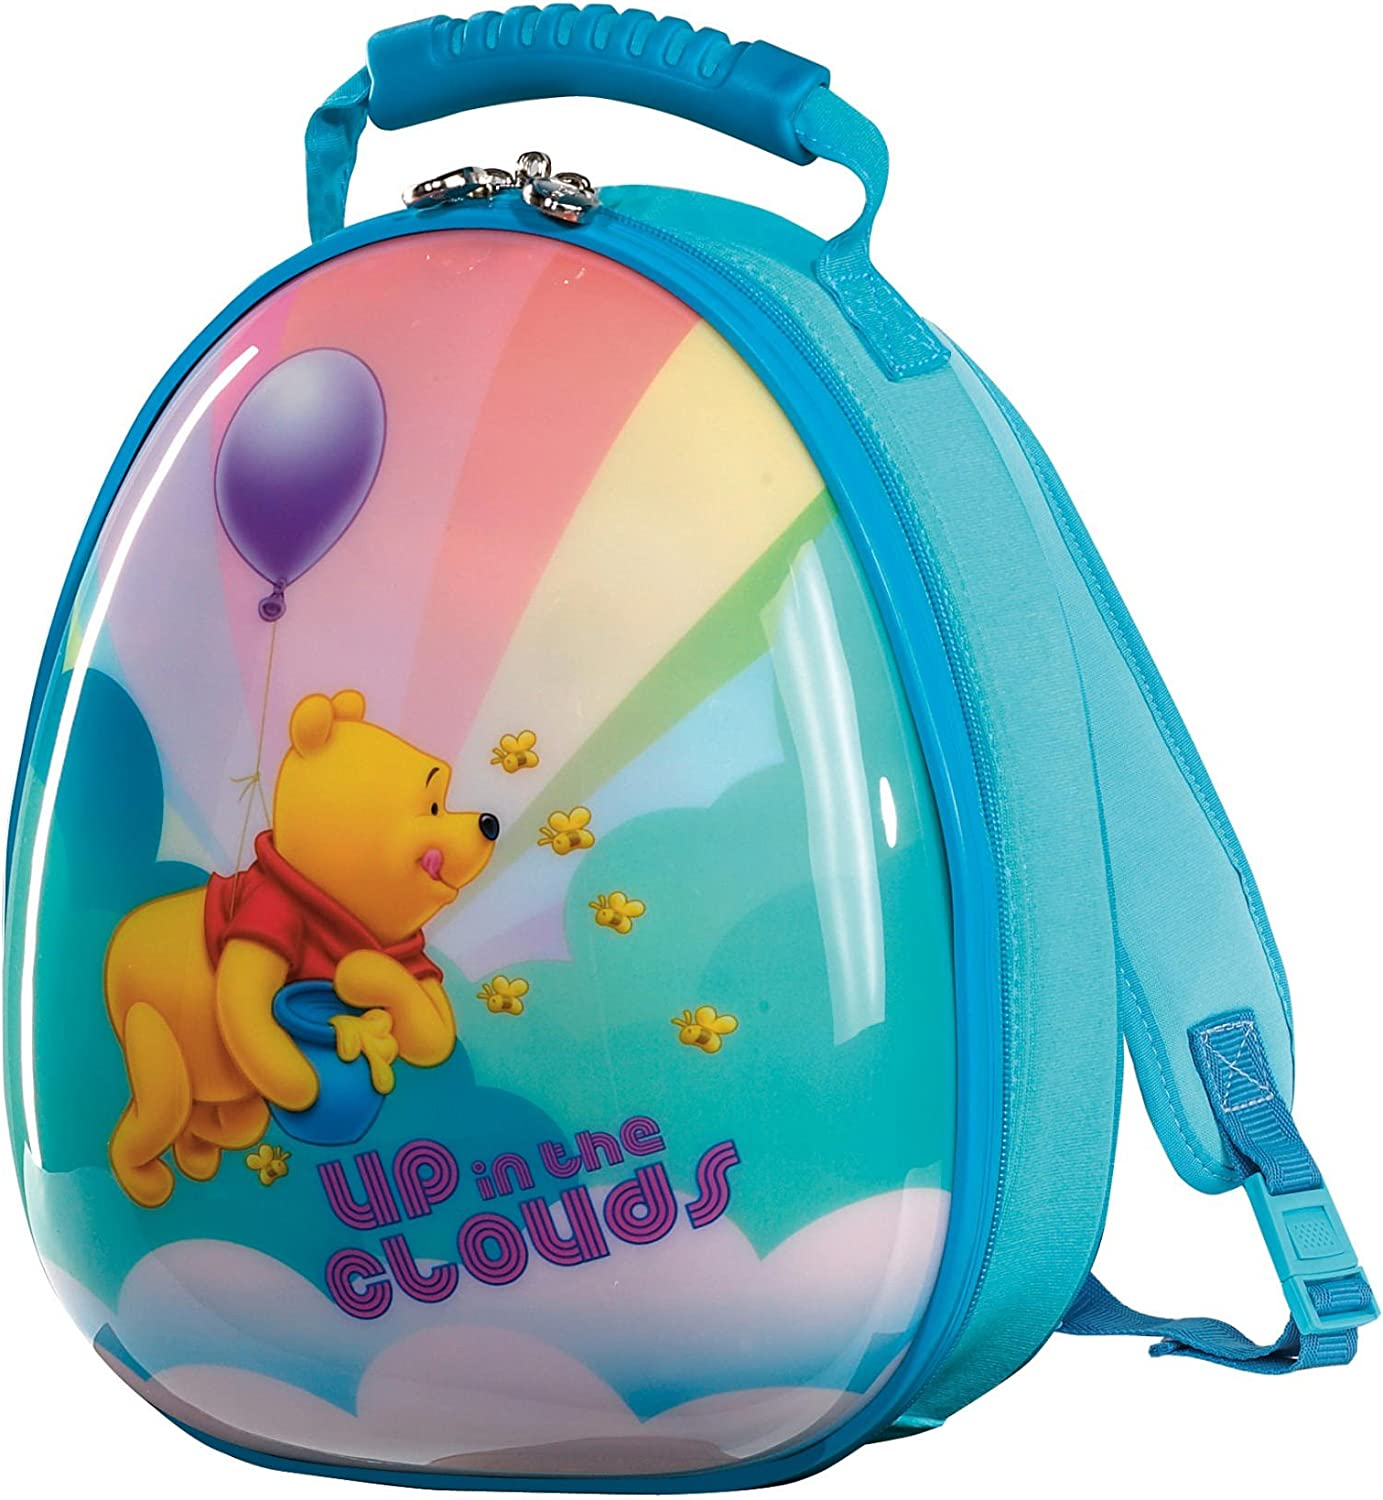 Heys Usa Luggage Disney Winnie Pooh Up In The Clouds 12 Inch Hybrid Backpack Winnie Pooh 12 Inch Amazon Ca Clothing Accessories